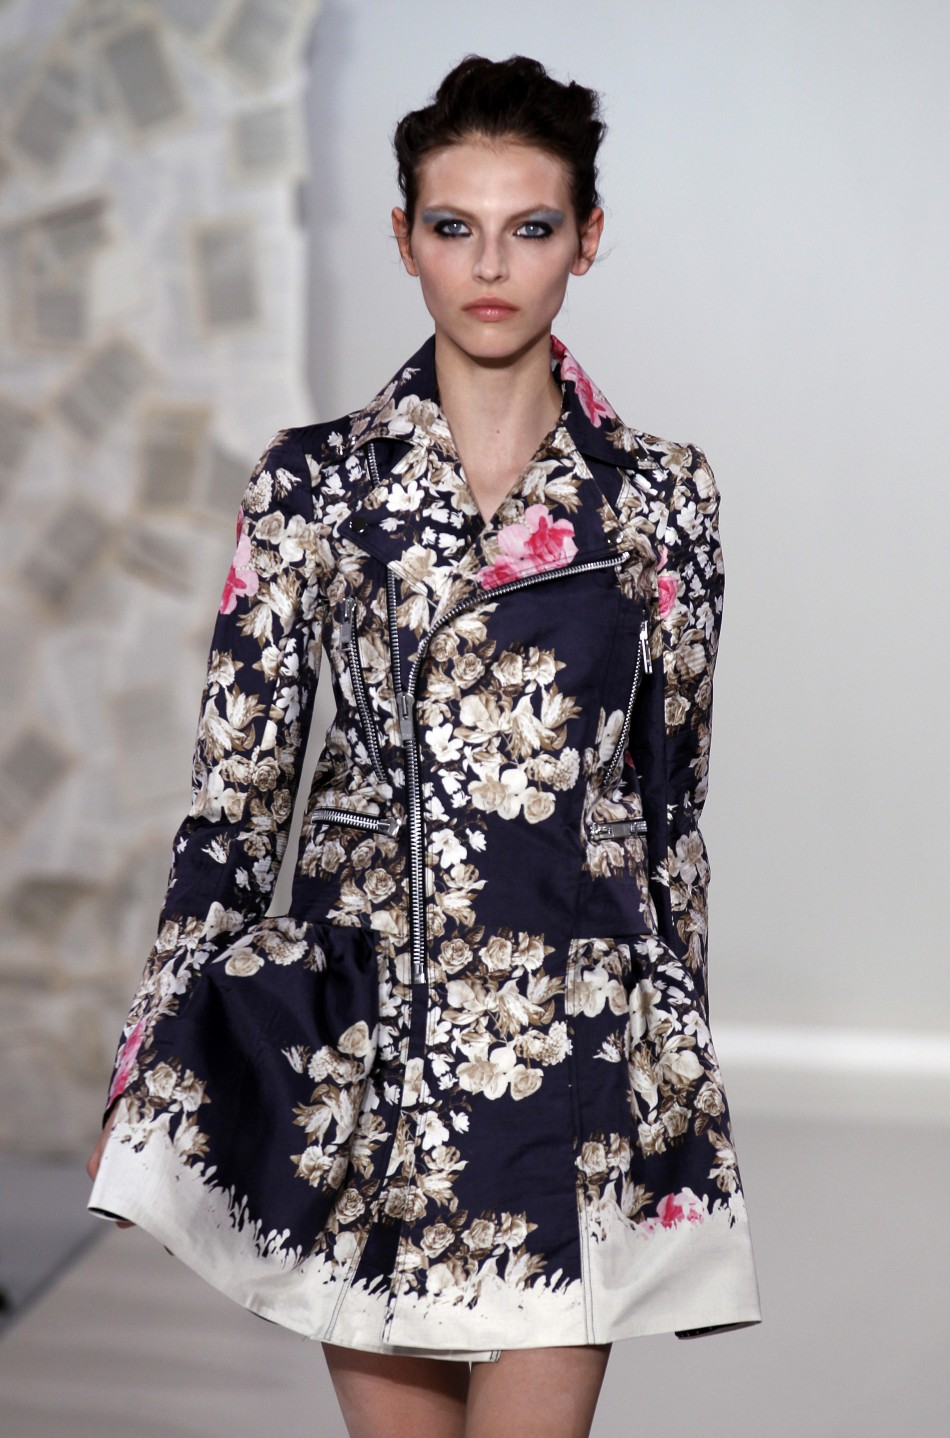 BFC Announces Provisional Schedule for London Fashion Week